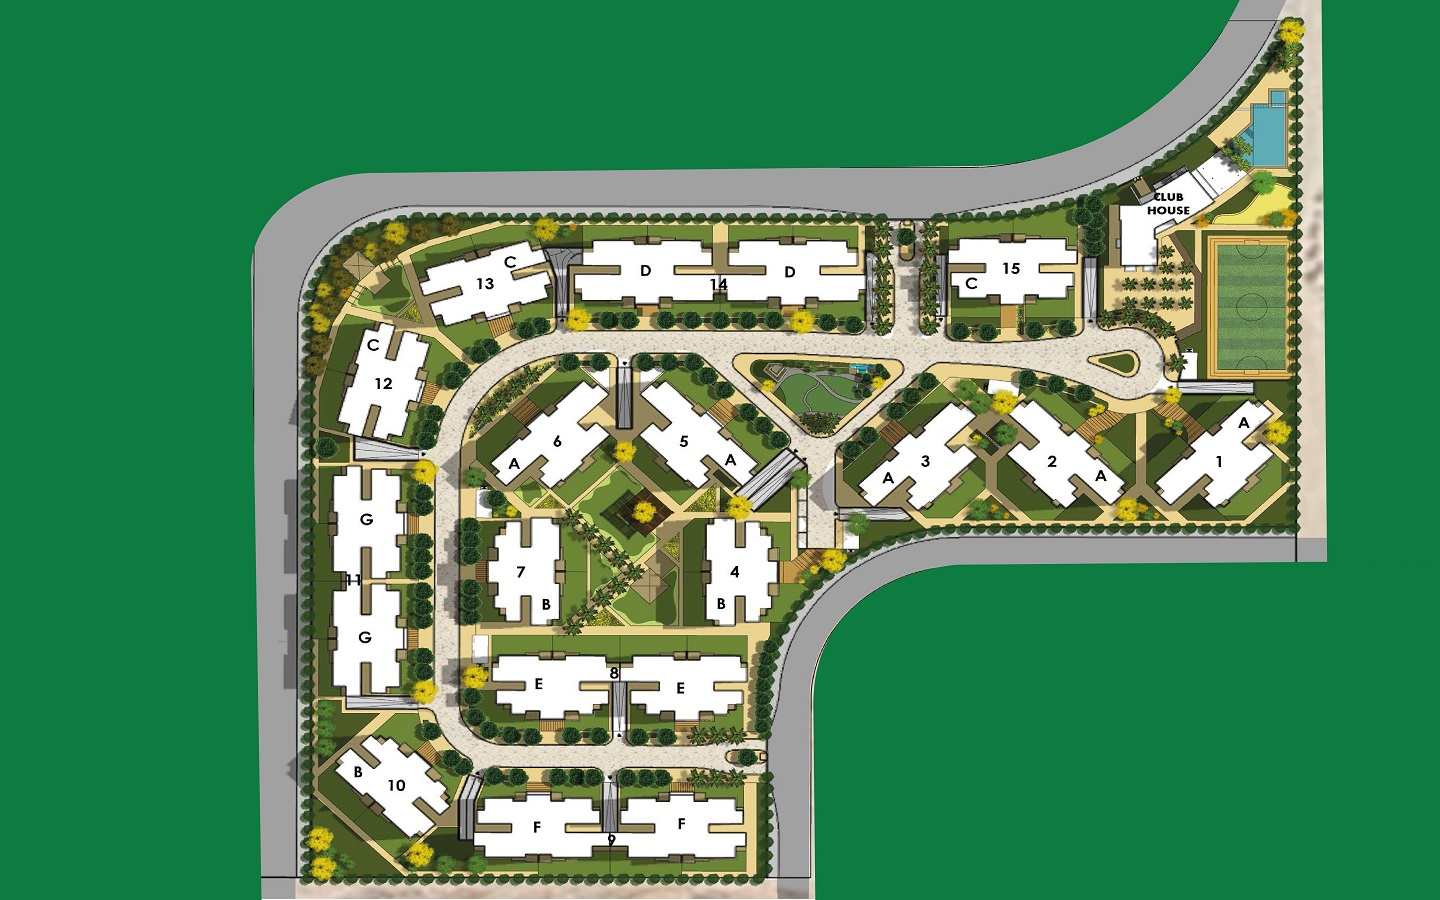 Green 6 Compound 6 October New Project by Mabany Edris Apartments For Sale - 8 Gates Real Estate Egypt (6)